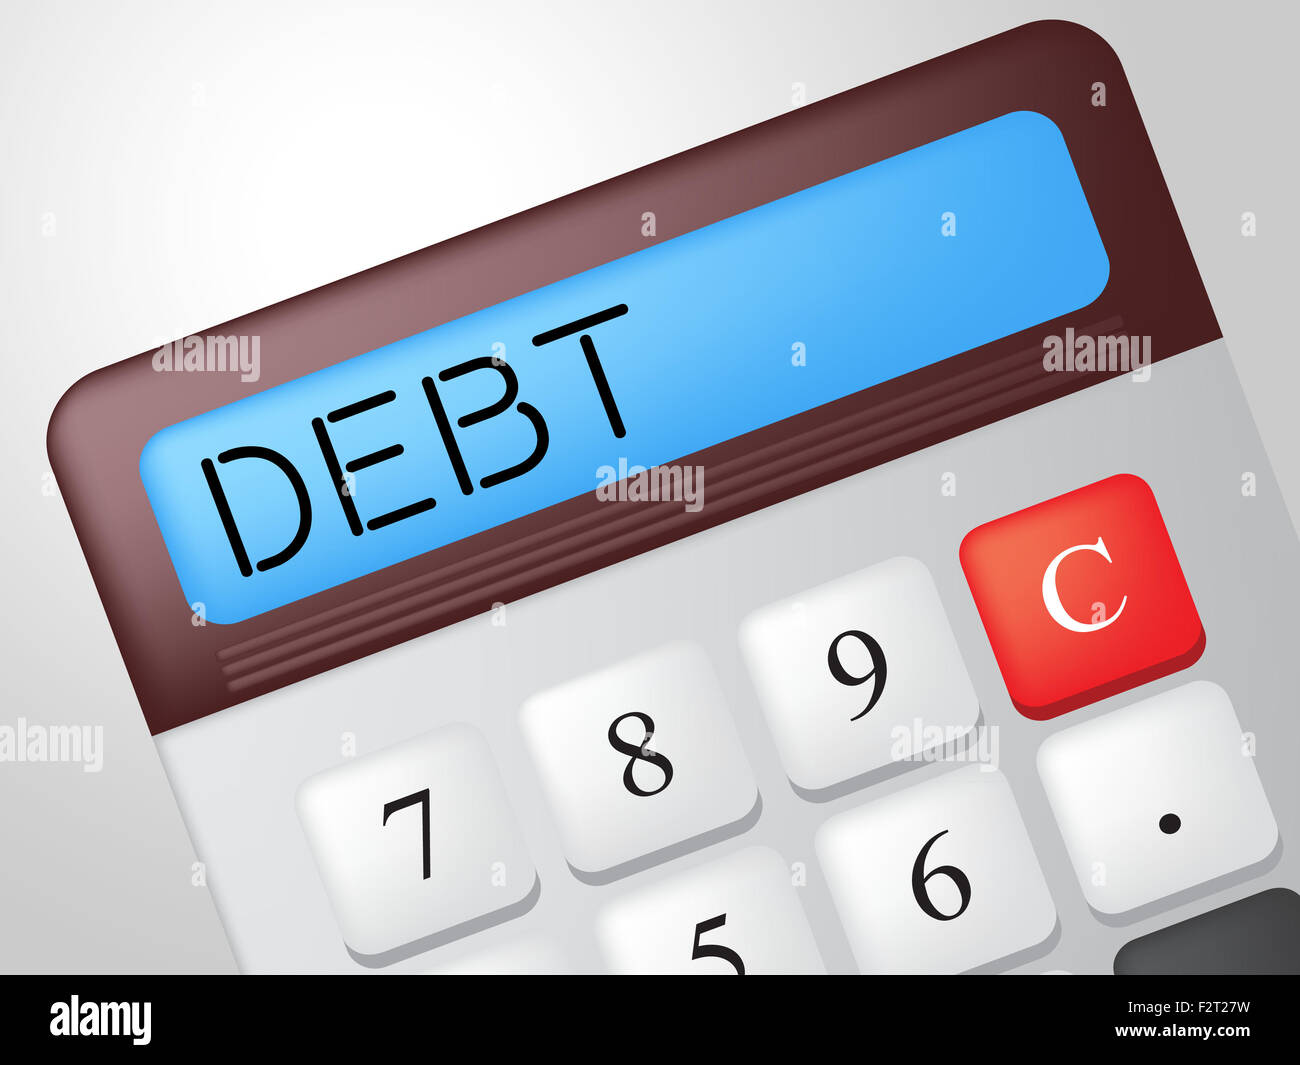 Debt payoff calculator.